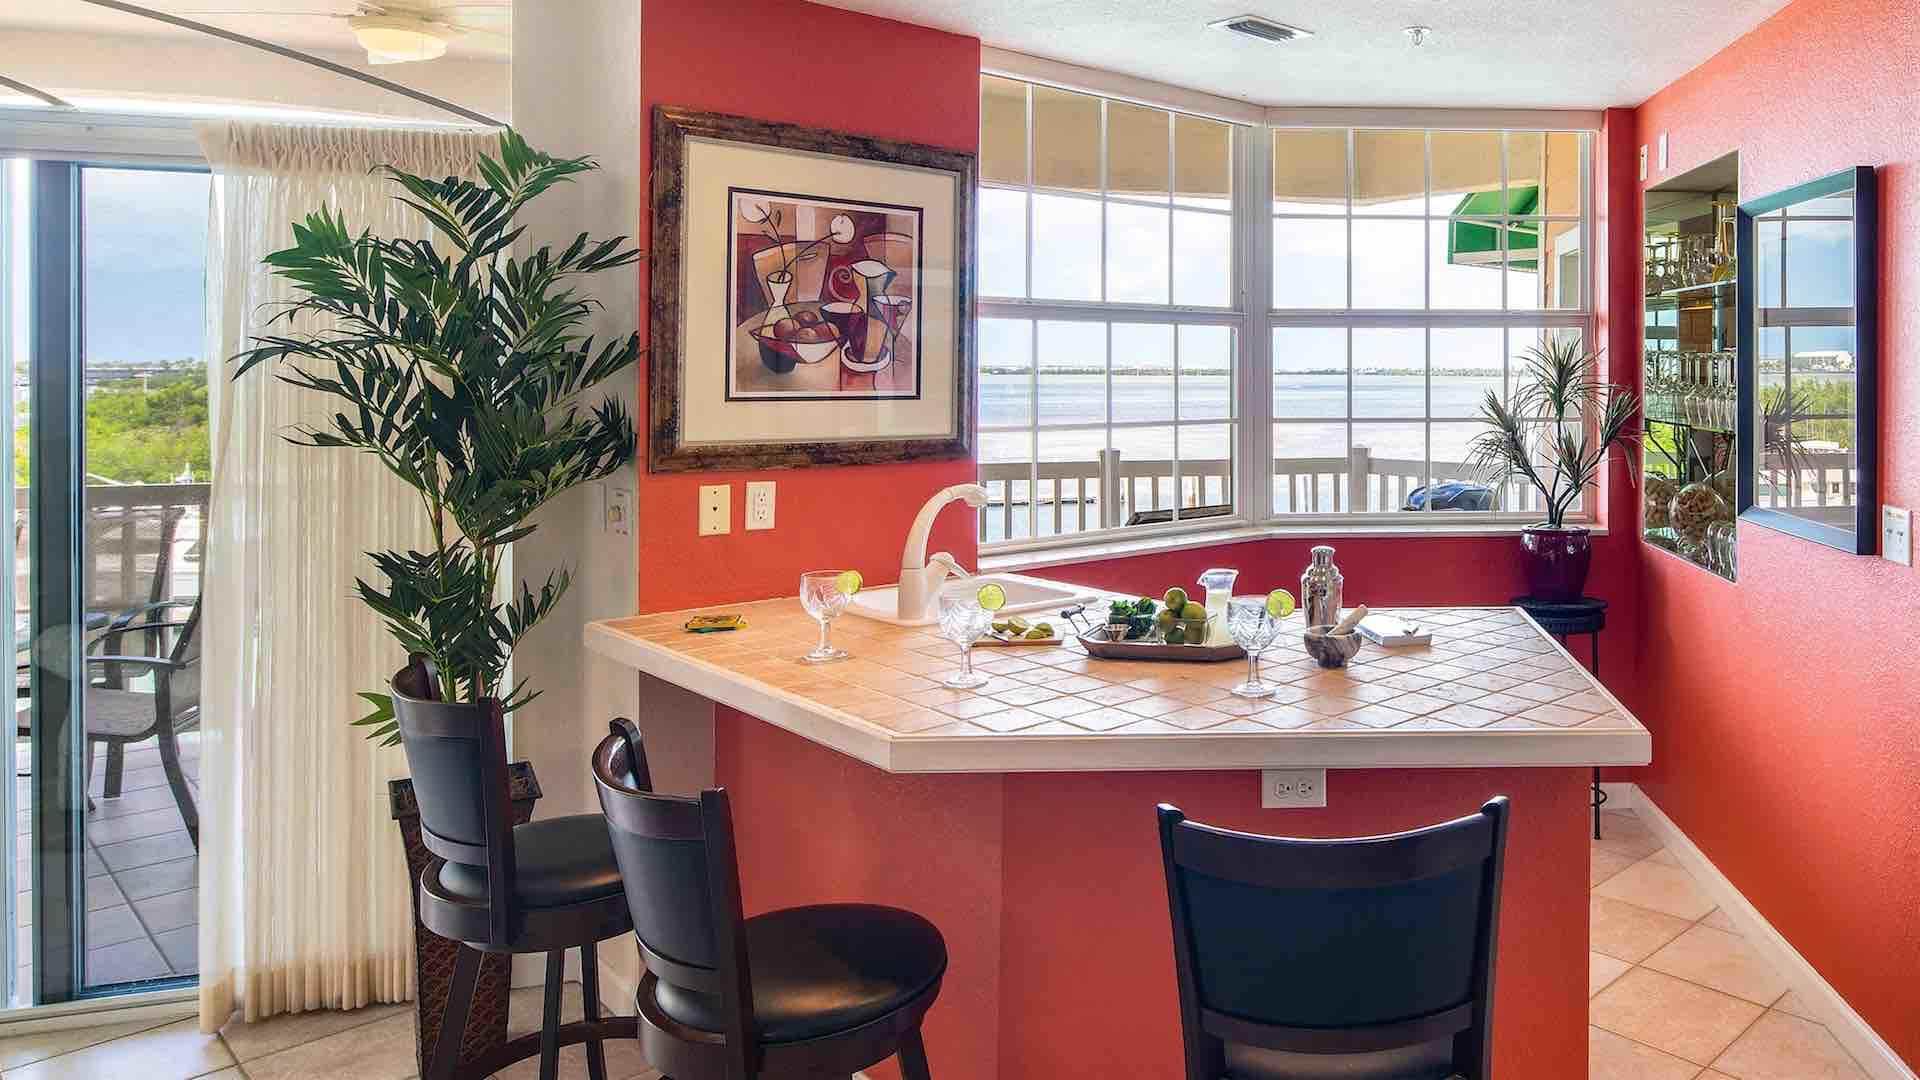 The condo has a separate full bar for hosting your own private happy hour...